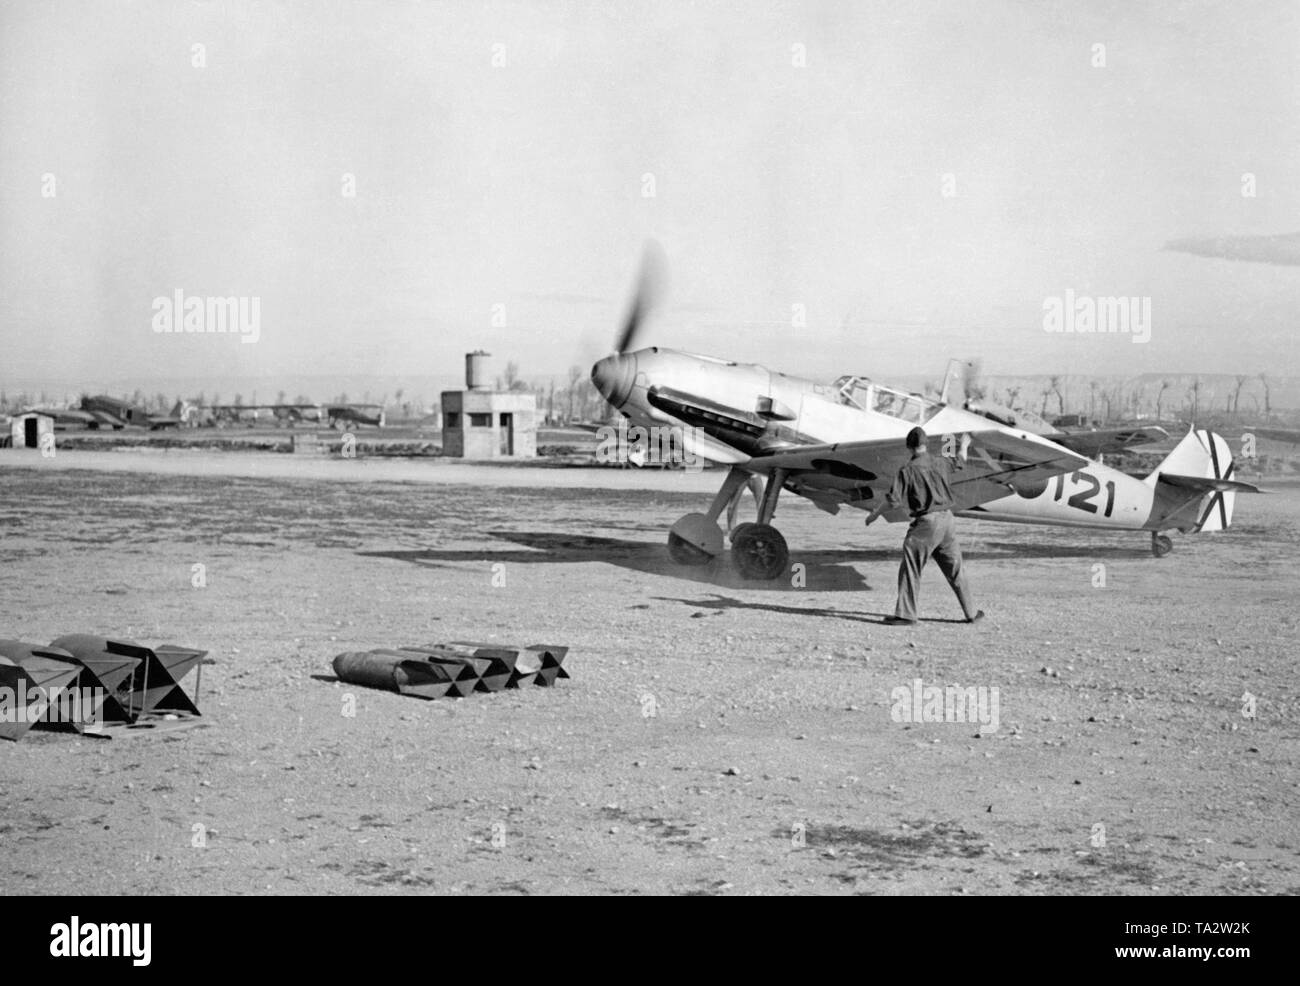 Photo of a German fighter, type Messerschmitt Bf 109, of the Fighter Squadron 88 of the Condor Legion during a take-off on a Spanish airfield. At the rear there is the saltire of the Spanish Air Force. In the background there are buildings and other aircrafts: Junkers Ju 52, Fieseler Storch. In the foreground are aerial bombs. - Stock Image